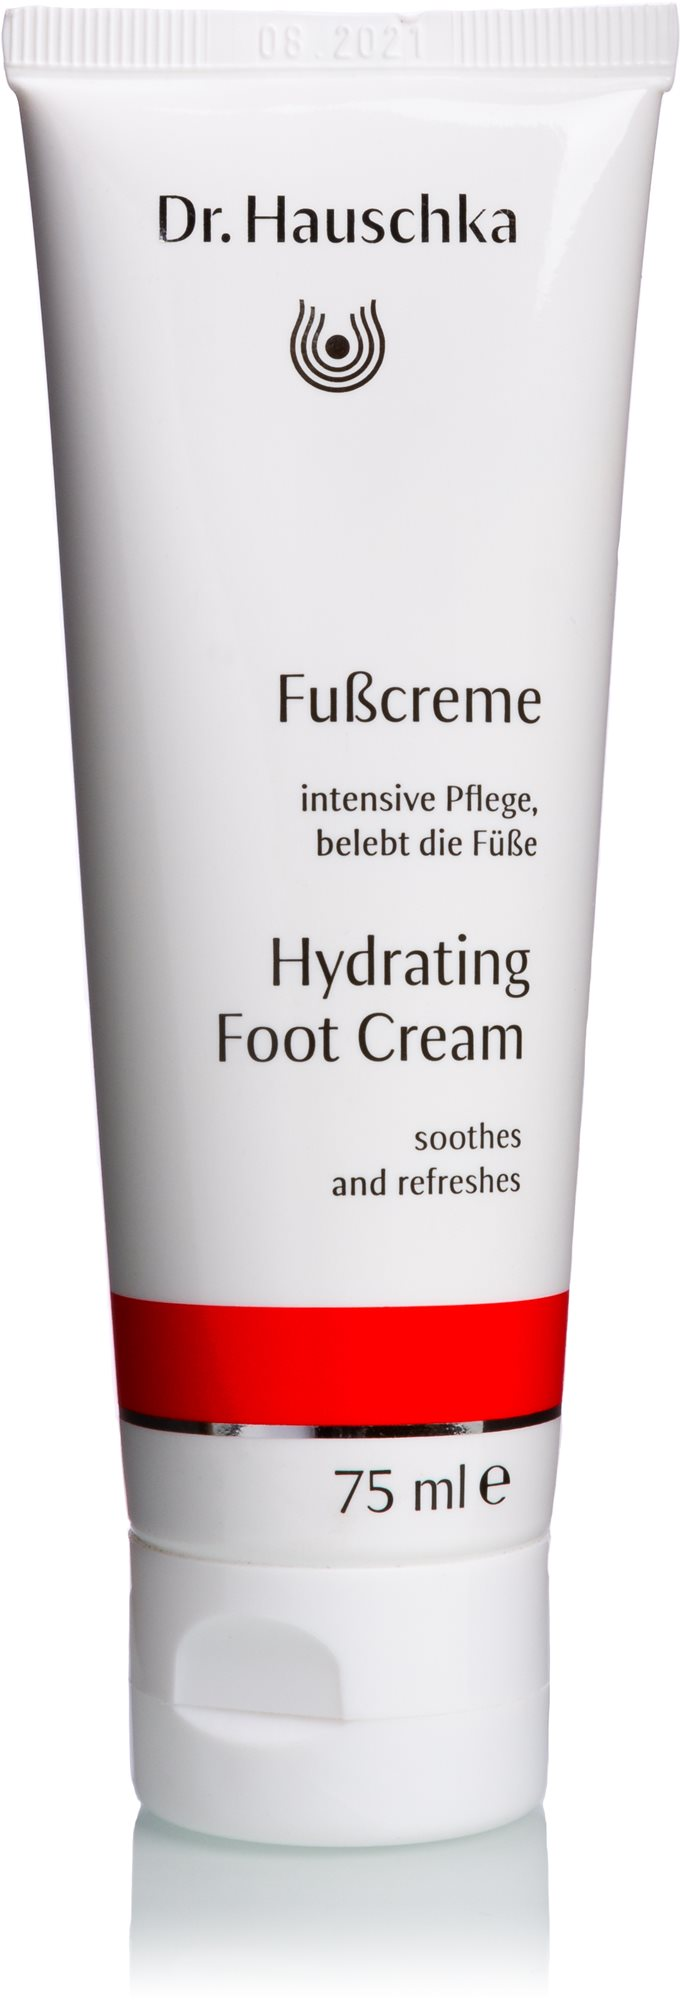 DR. HAUSCHKA Hydrating Foot Cream 75 ml